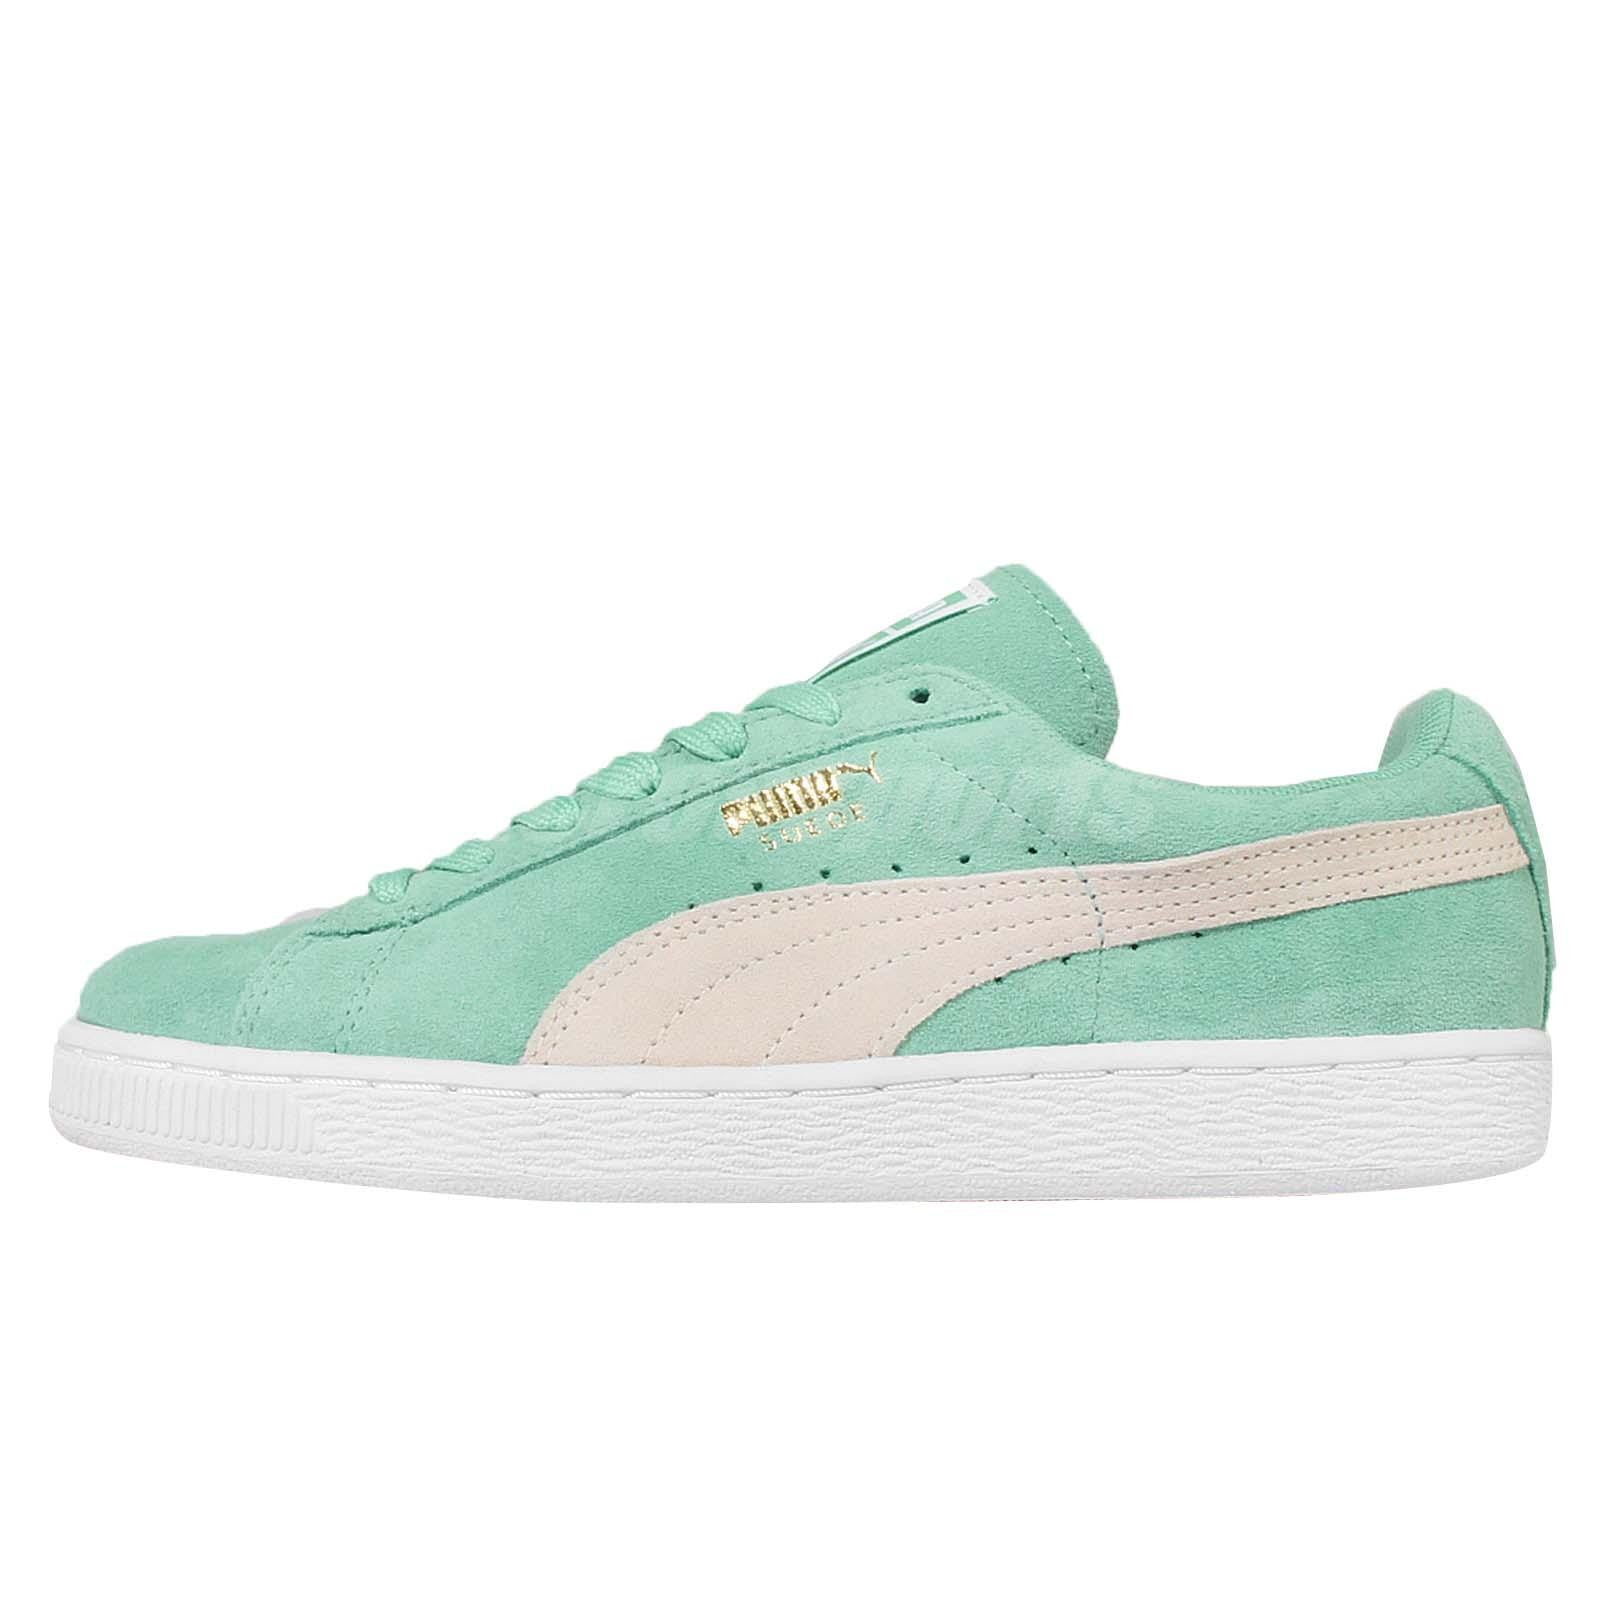 Details about puma womens suede classic rg black running shoes - Puma Suede Classic Wn S Holiday White 355462 32